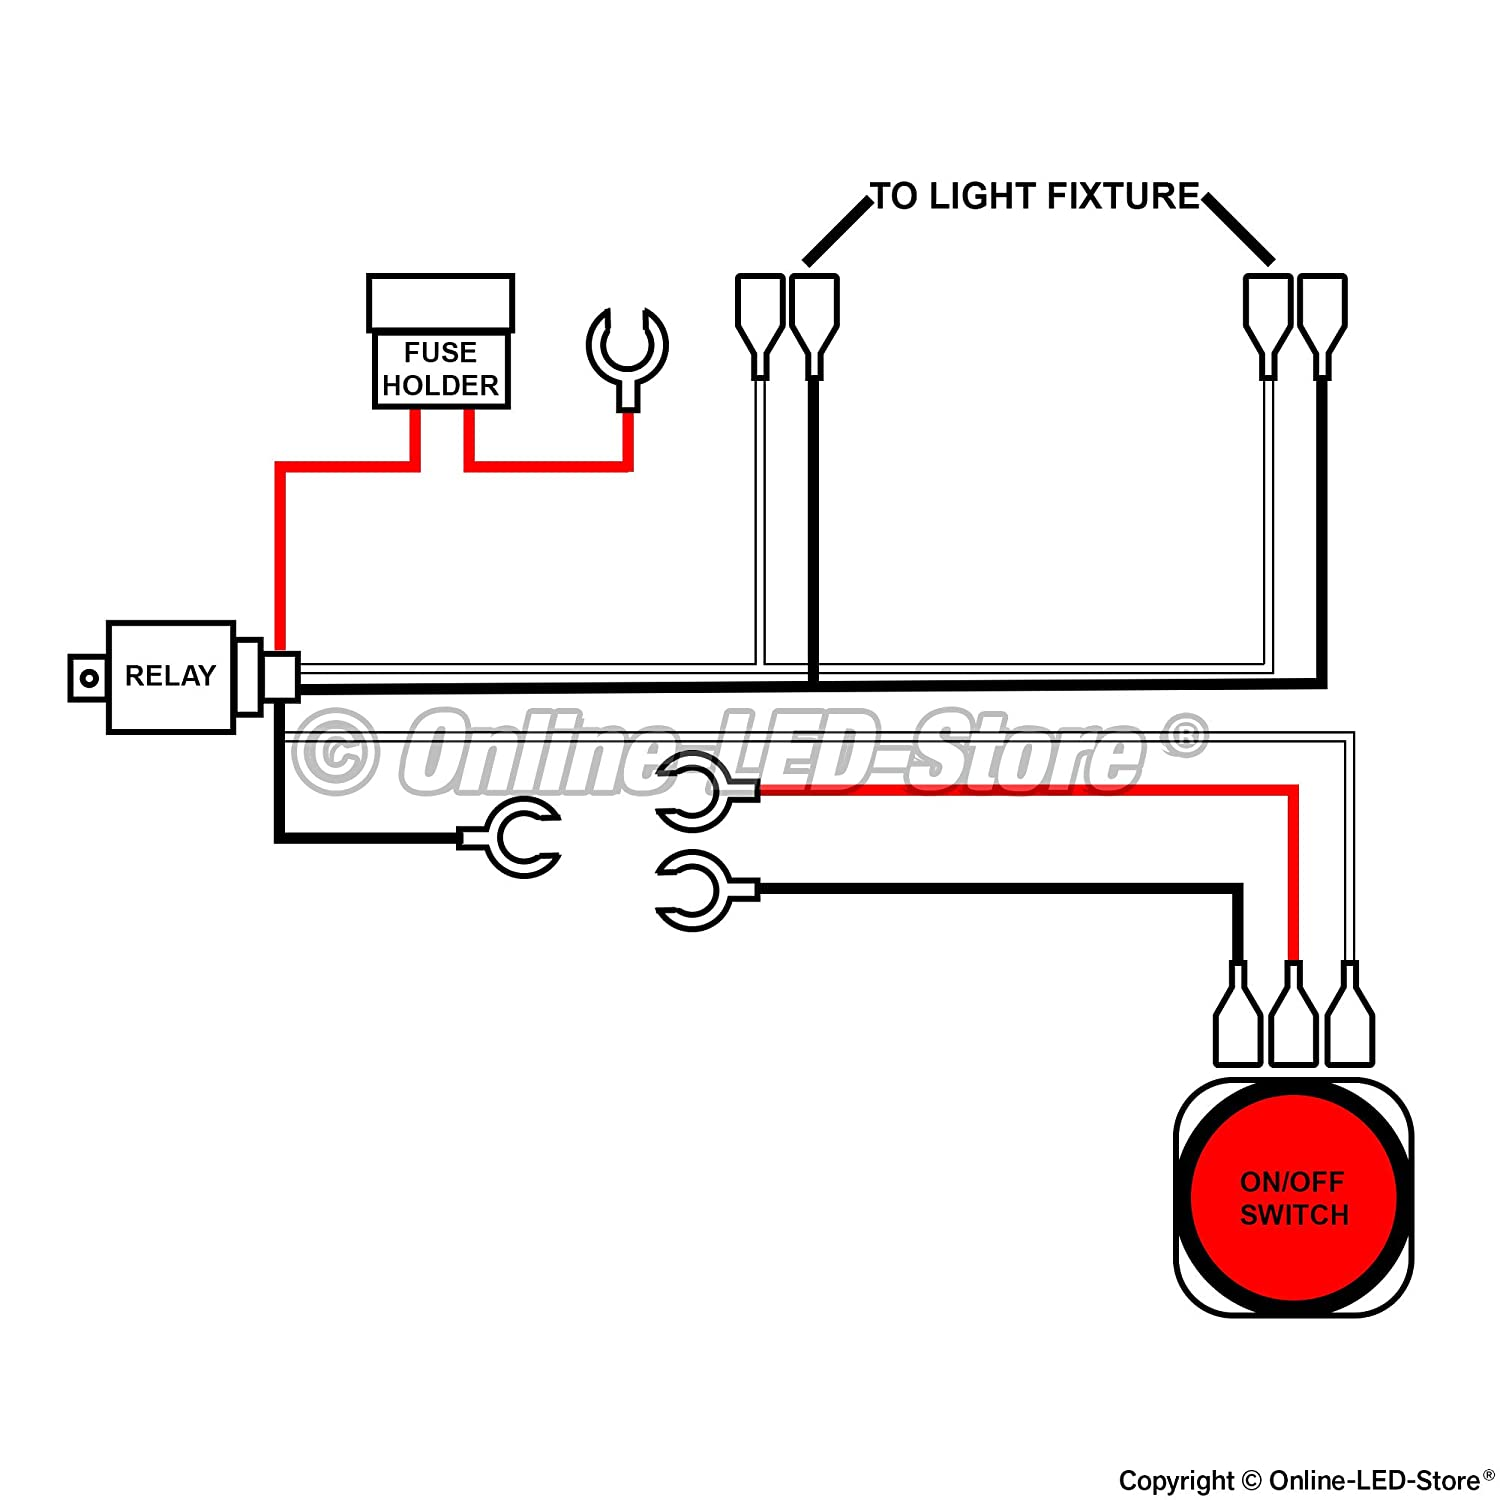 716CShdU1oL._SL1500_ nilight wiring diagram 12v rocker switch wiring diagram \u2022 free nilight led wiring diagram at edmiracle.co